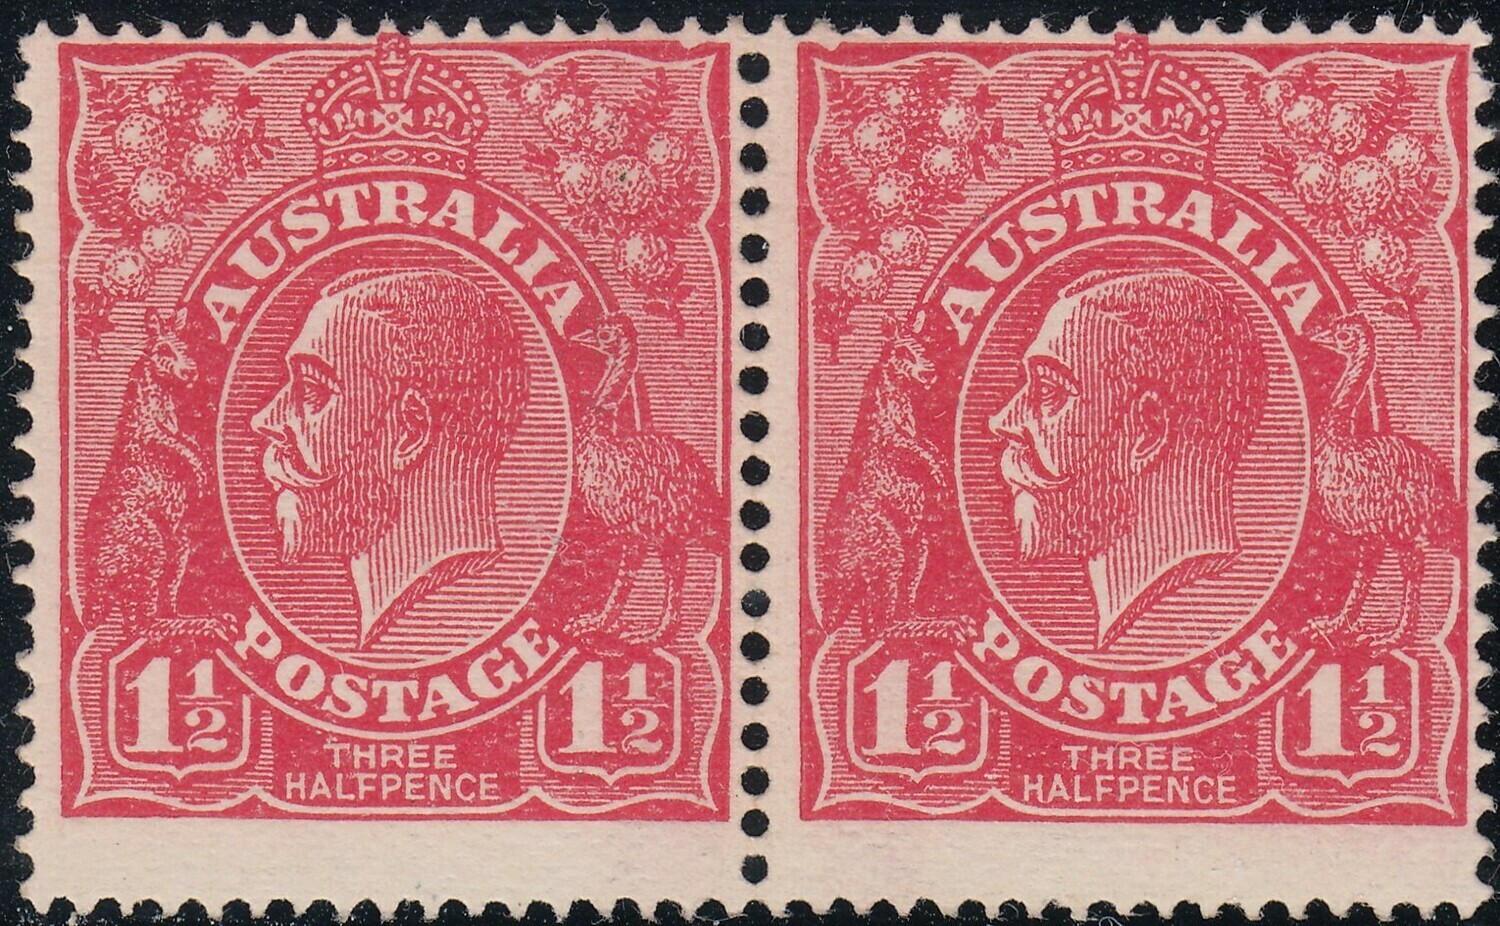 Australia 1924 KGV 1½d Scarlet Pair with Notched Frames Very Scarce MUH